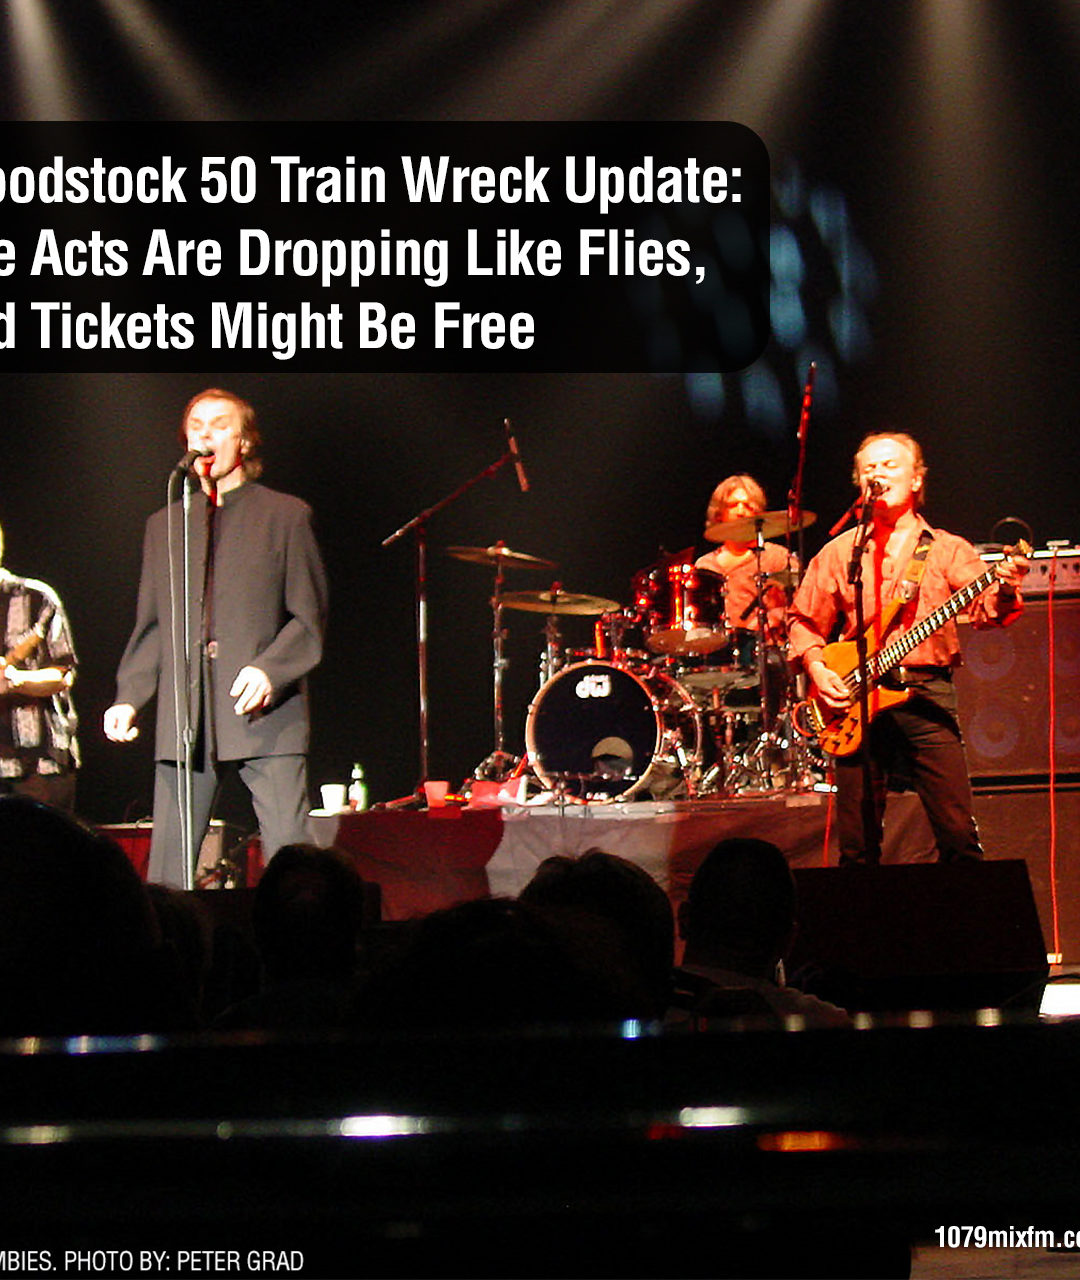 Woodstock 50 Train Wreck Update: The Acts Are Dropping Like Flies, and Tickets Might Be Free